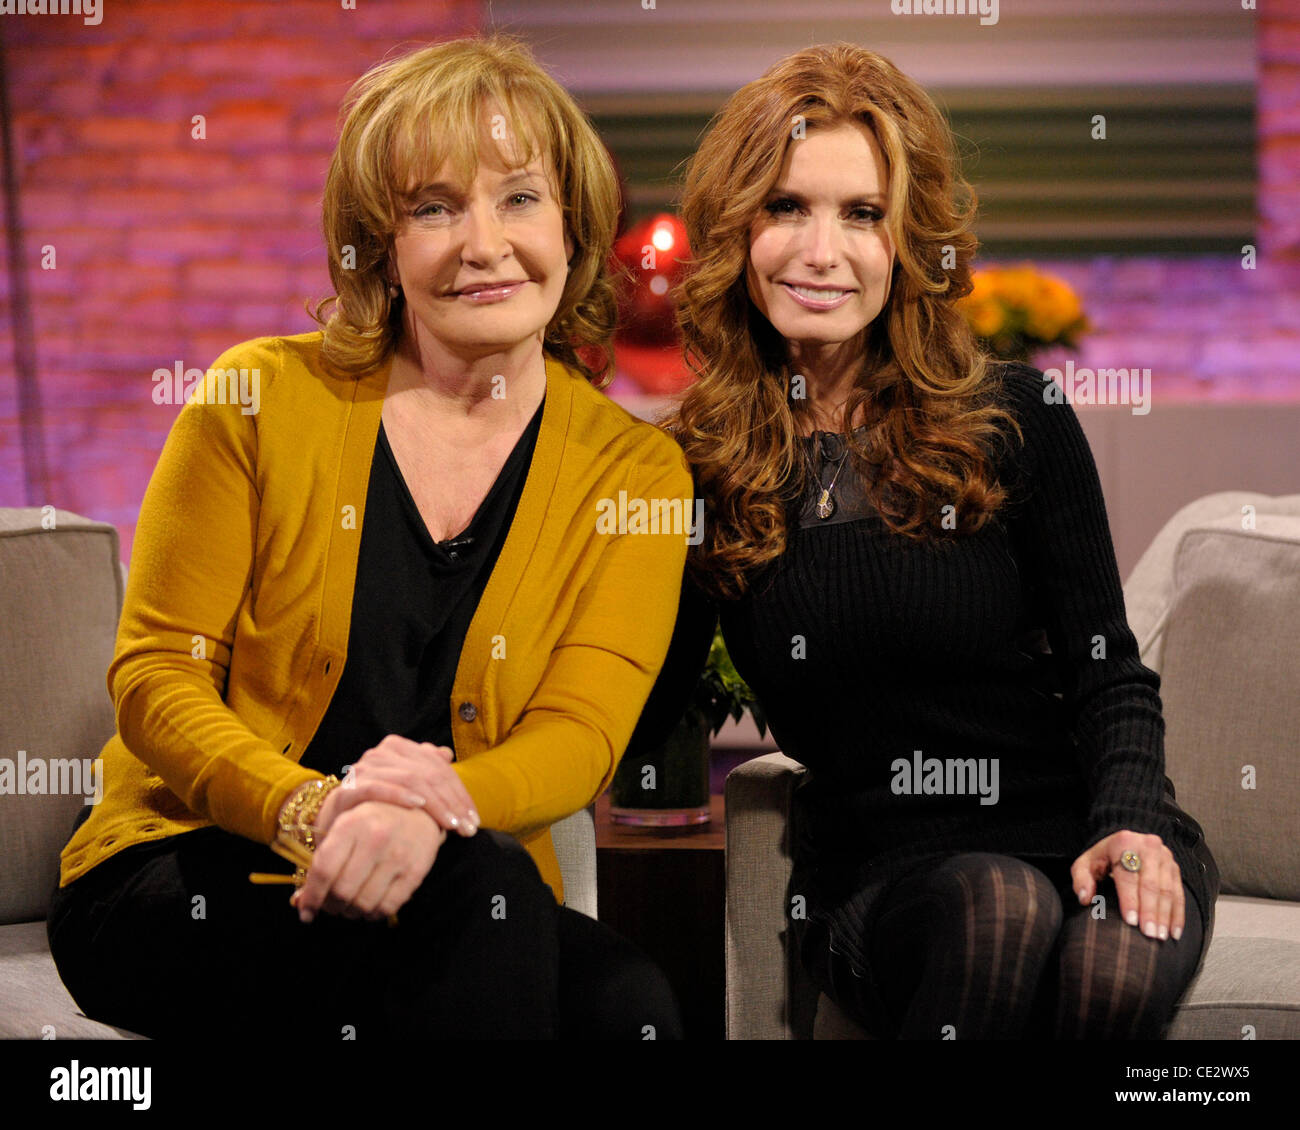 8 Best Marilyn Denis House Images On Pinterest: Fenmore Stock Photos & Fenmore Stock Images